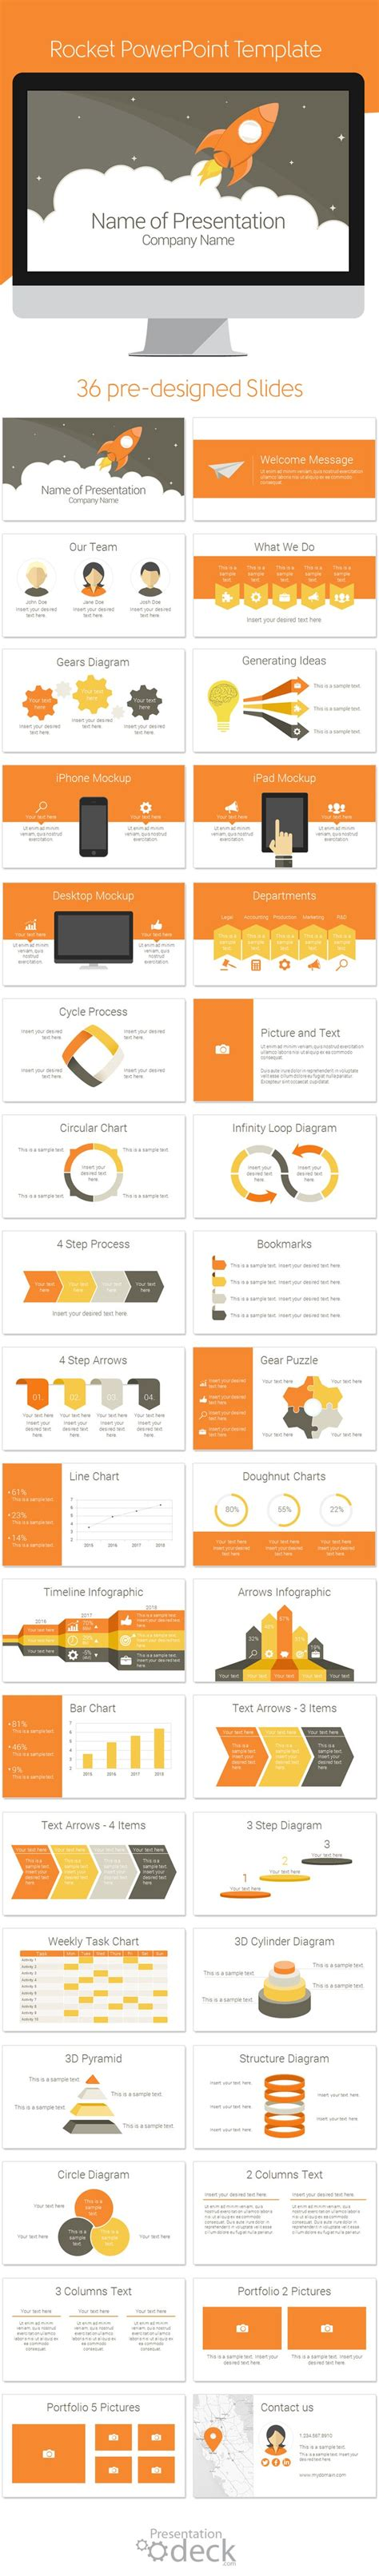 powerpoint template by design district via behance 357 best images about infographics on pinterest